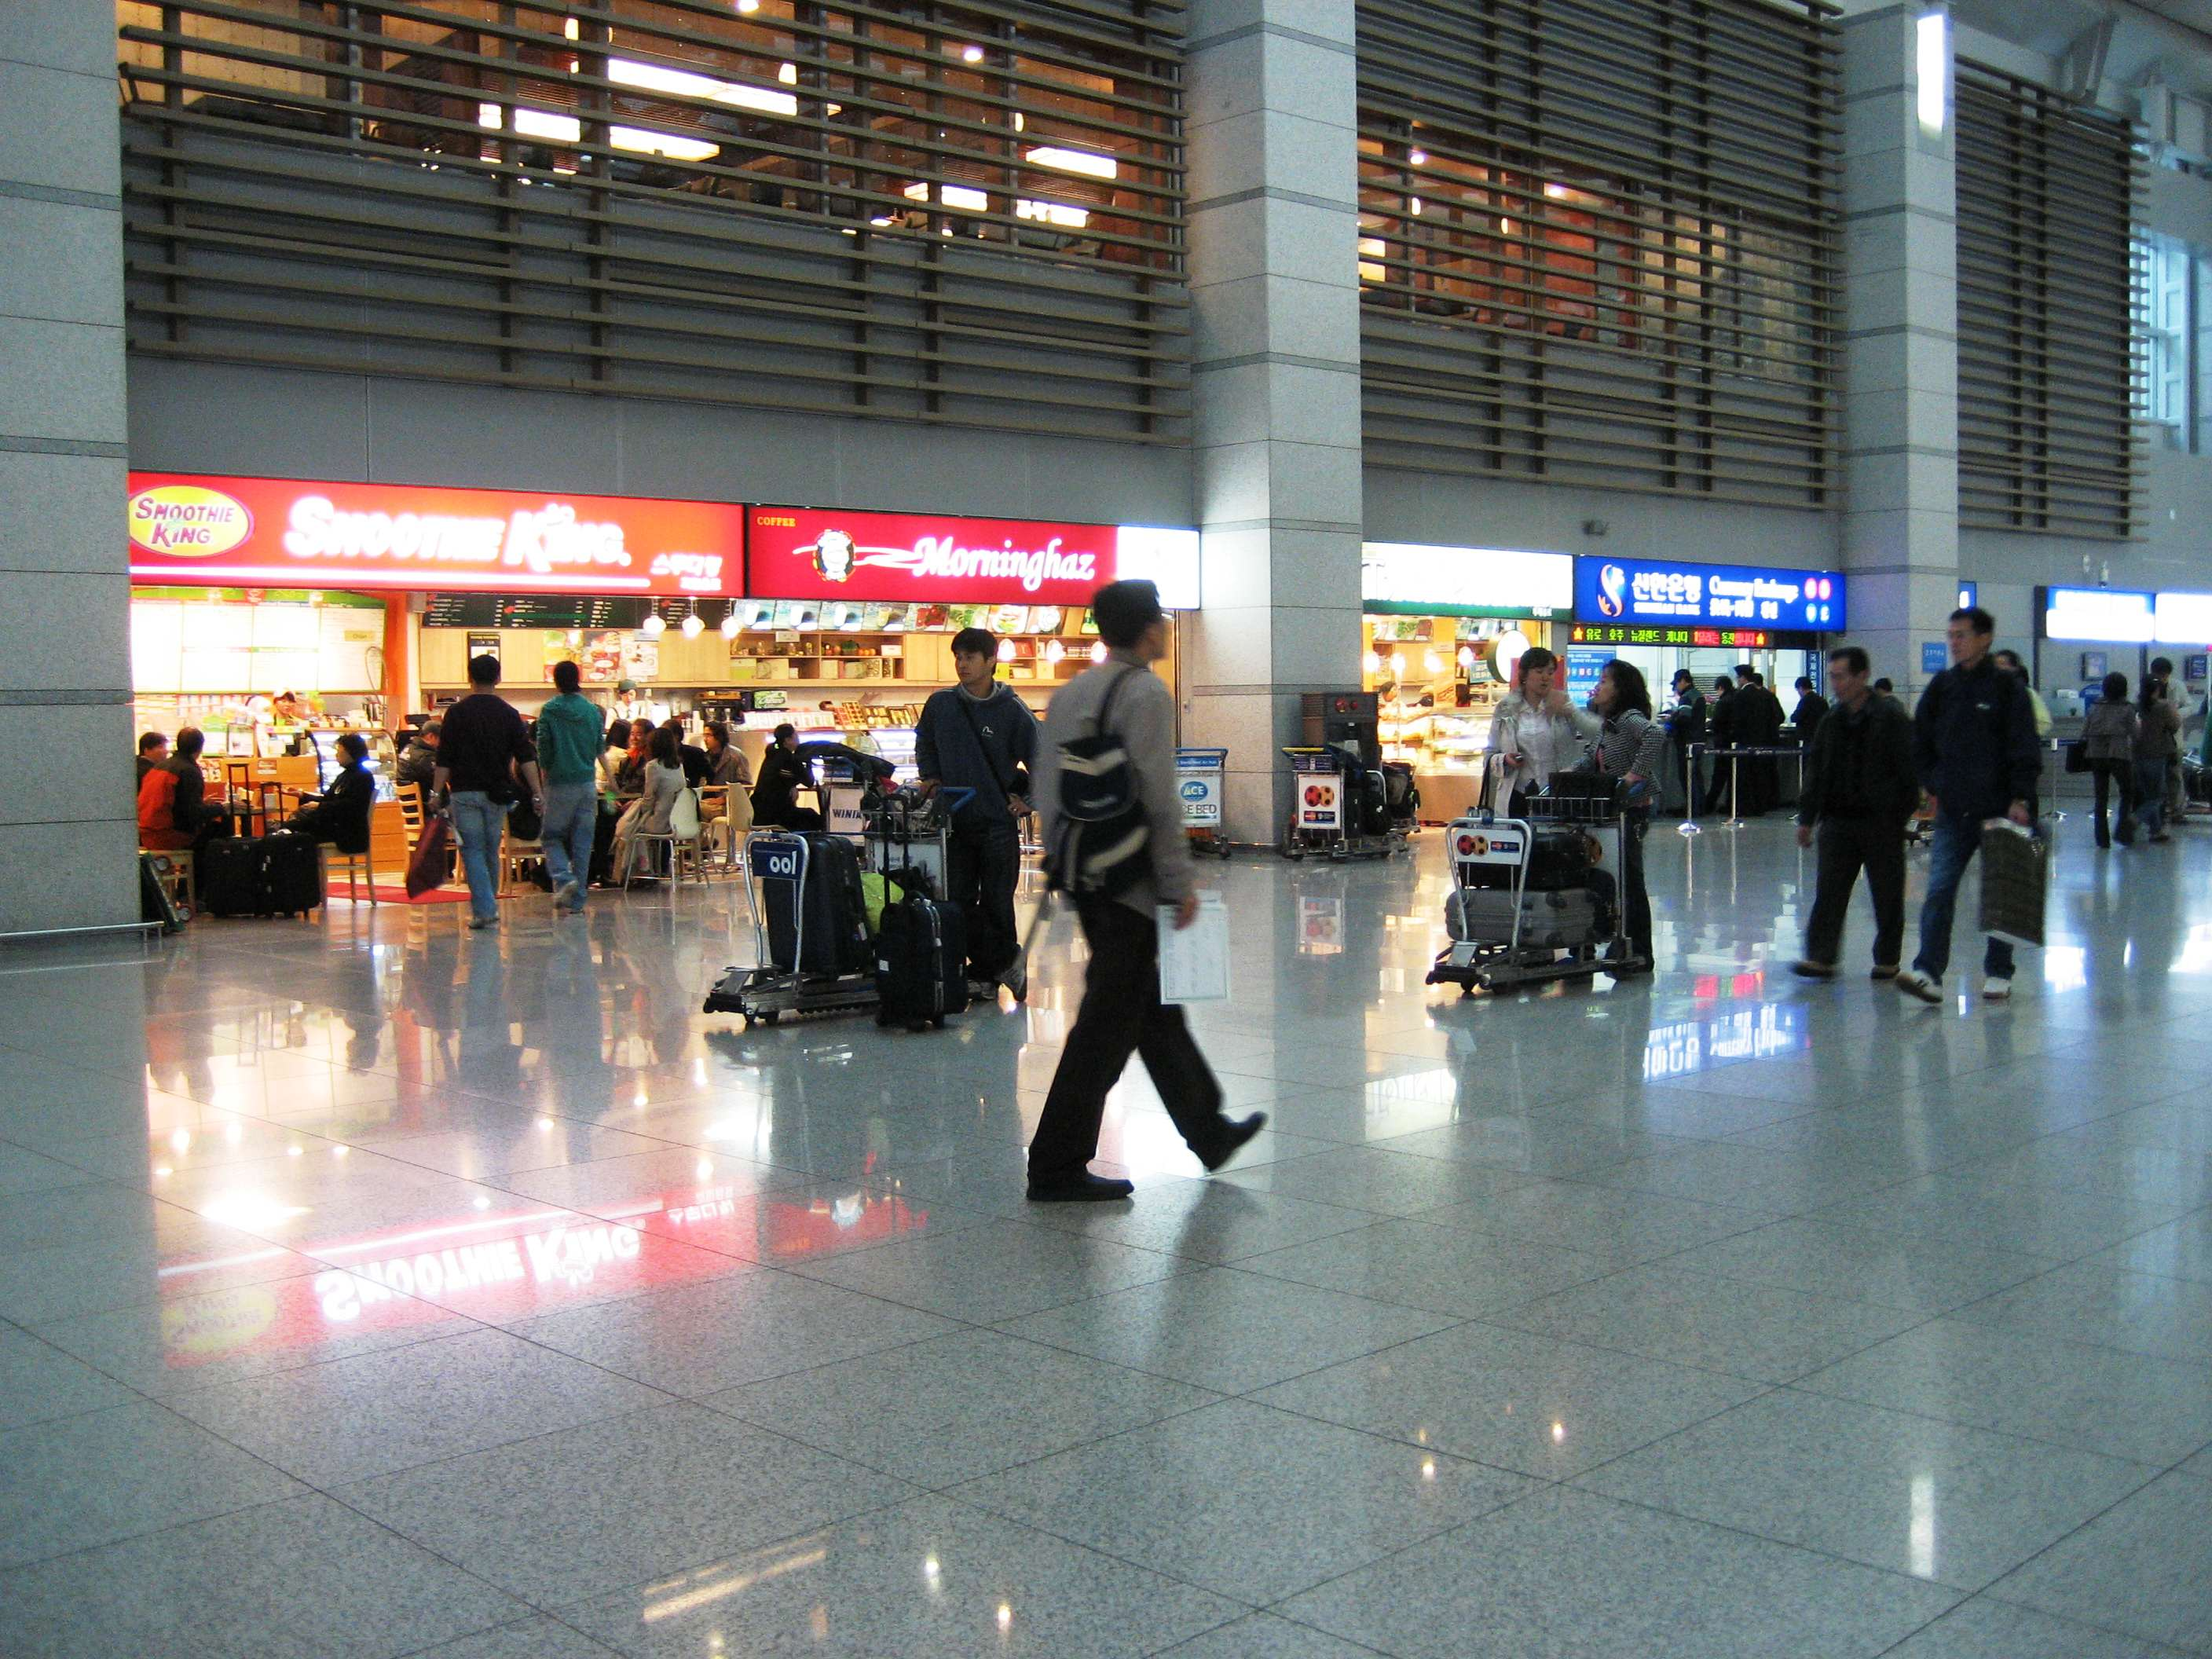 This Is How America Wishes It Was More Like Europe Korea Incheon International Airport Departure lobby shops bank